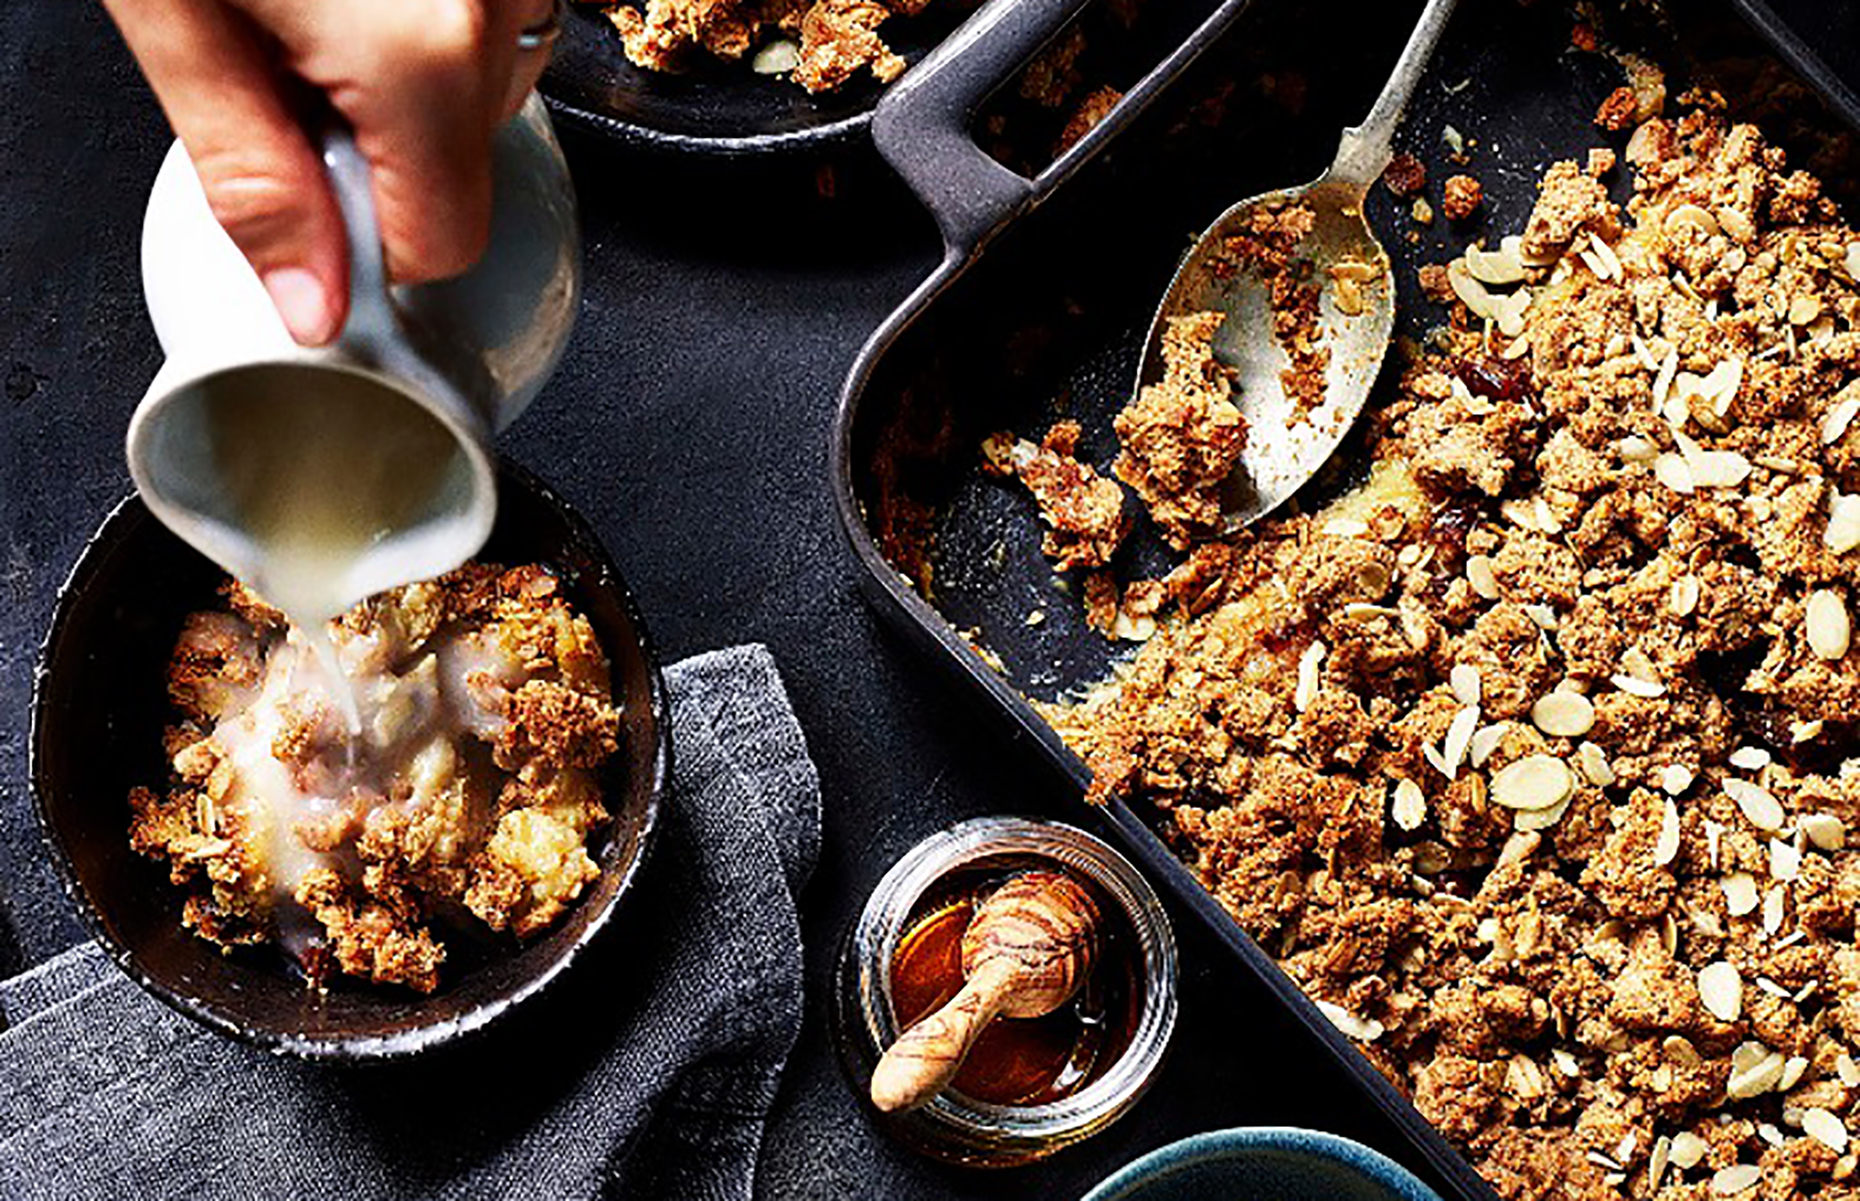 Peanut butter and banana crumble (Image: Bloomsbury/loveFOOD)